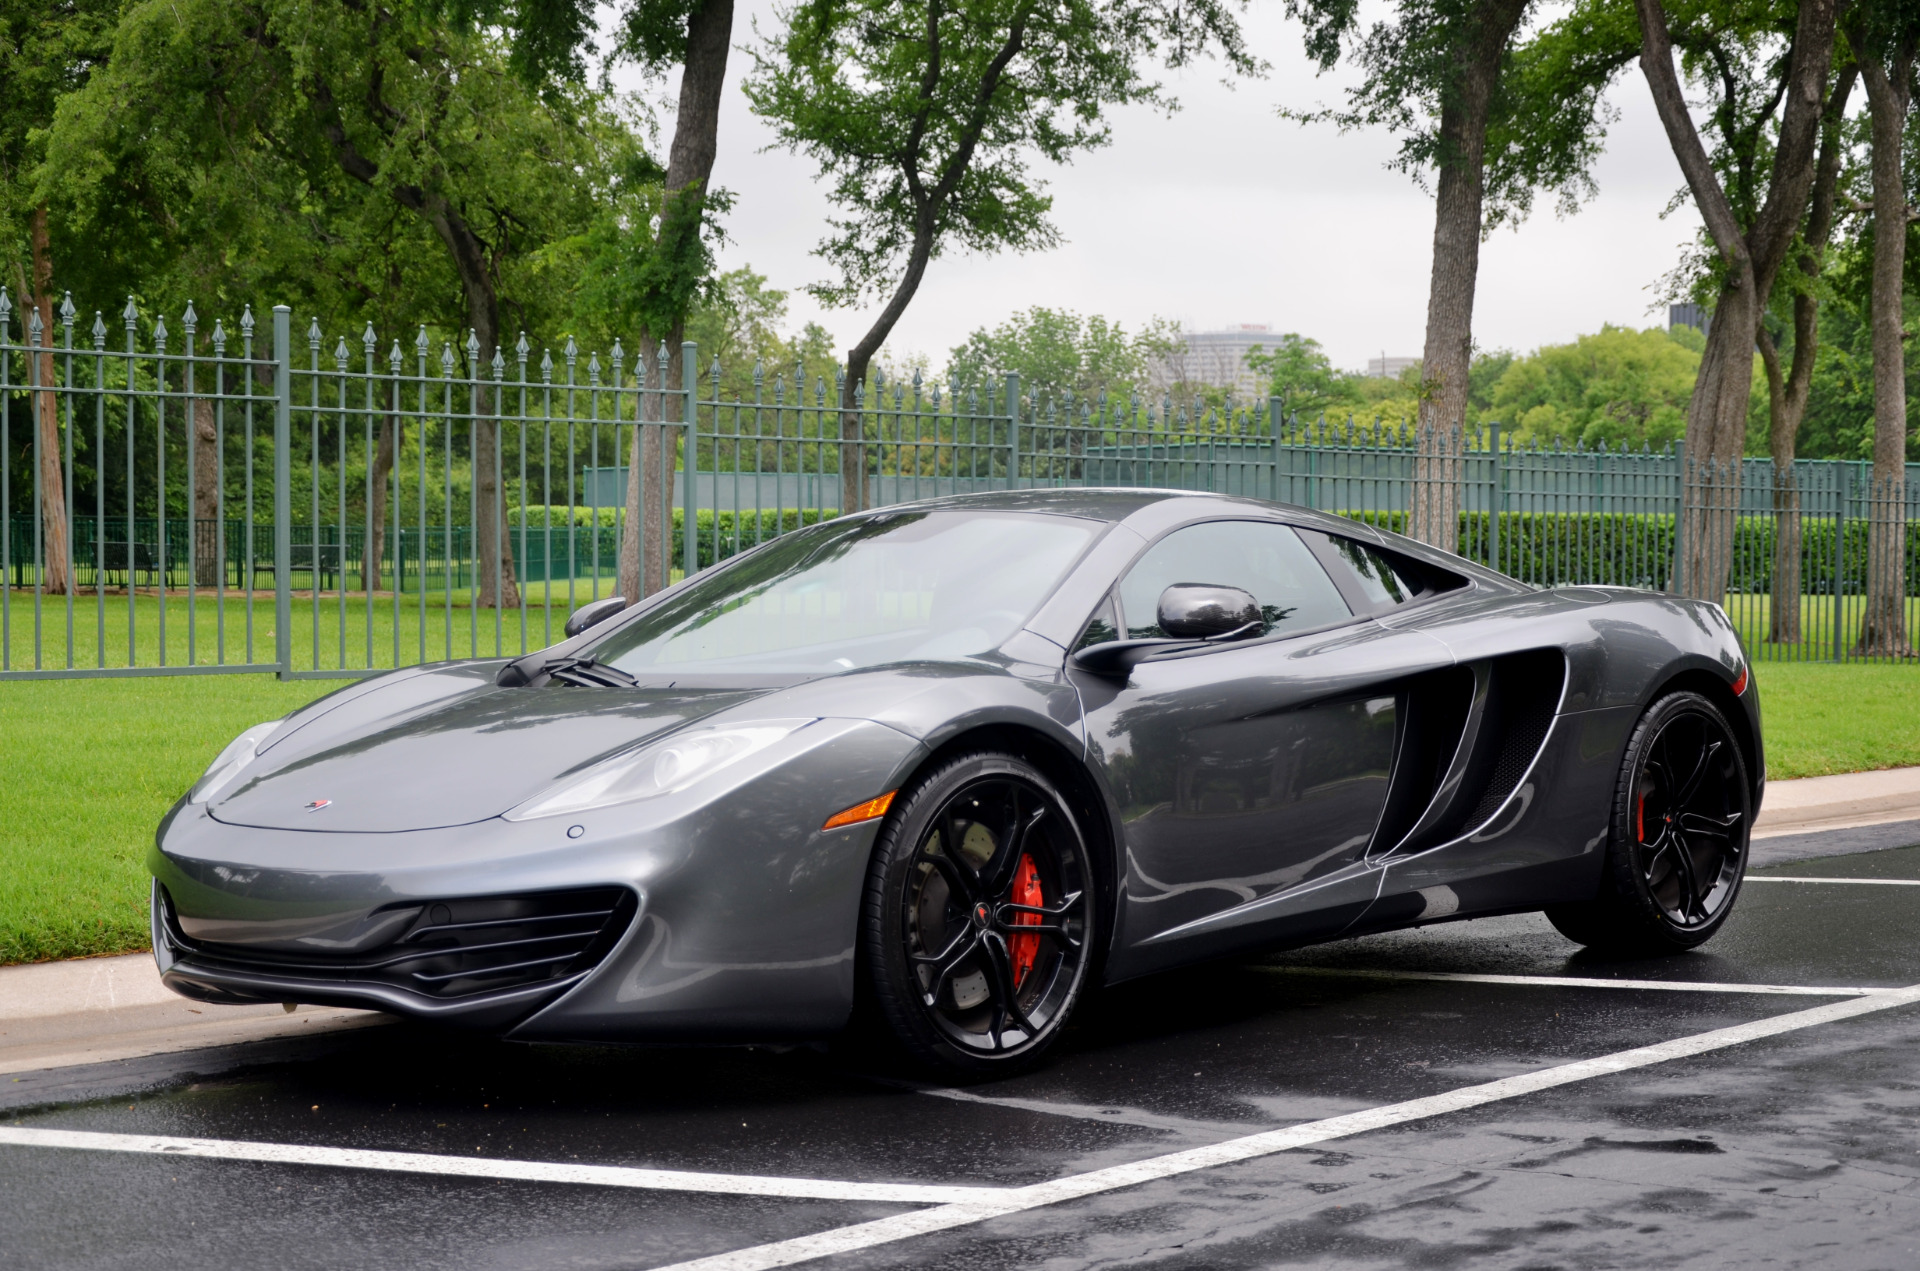 2012 mclaren mp4 12c stock 116996 for sale near dallas. Black Bedroom Furniture Sets. Home Design Ideas